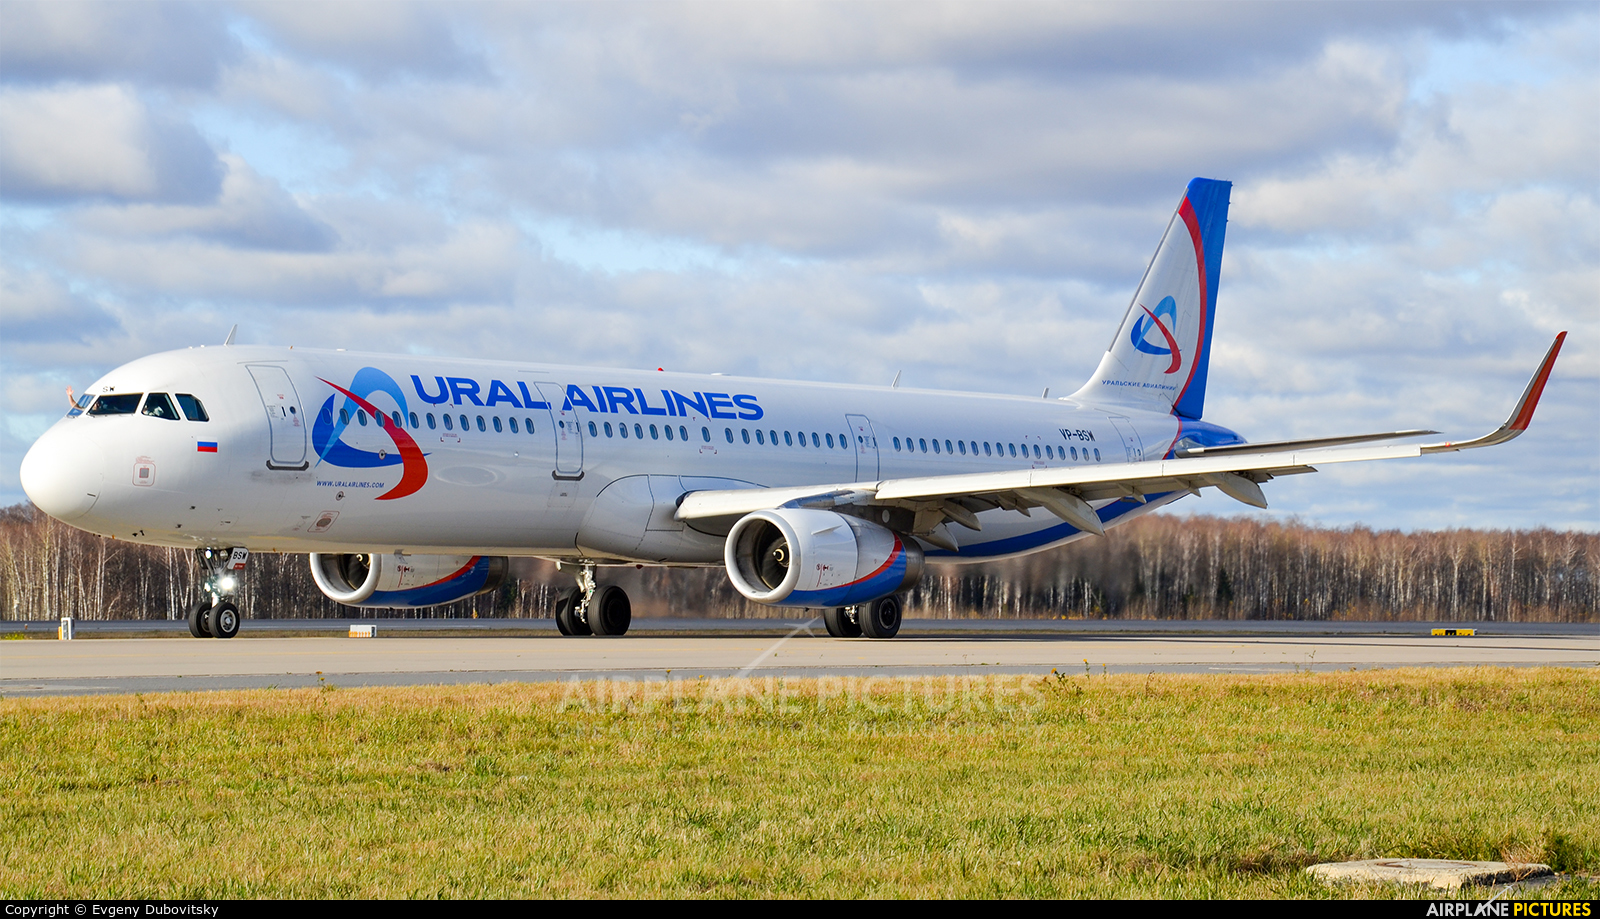 Ural Airlines VP-BSW aircraft at Moscow - Domodedovo